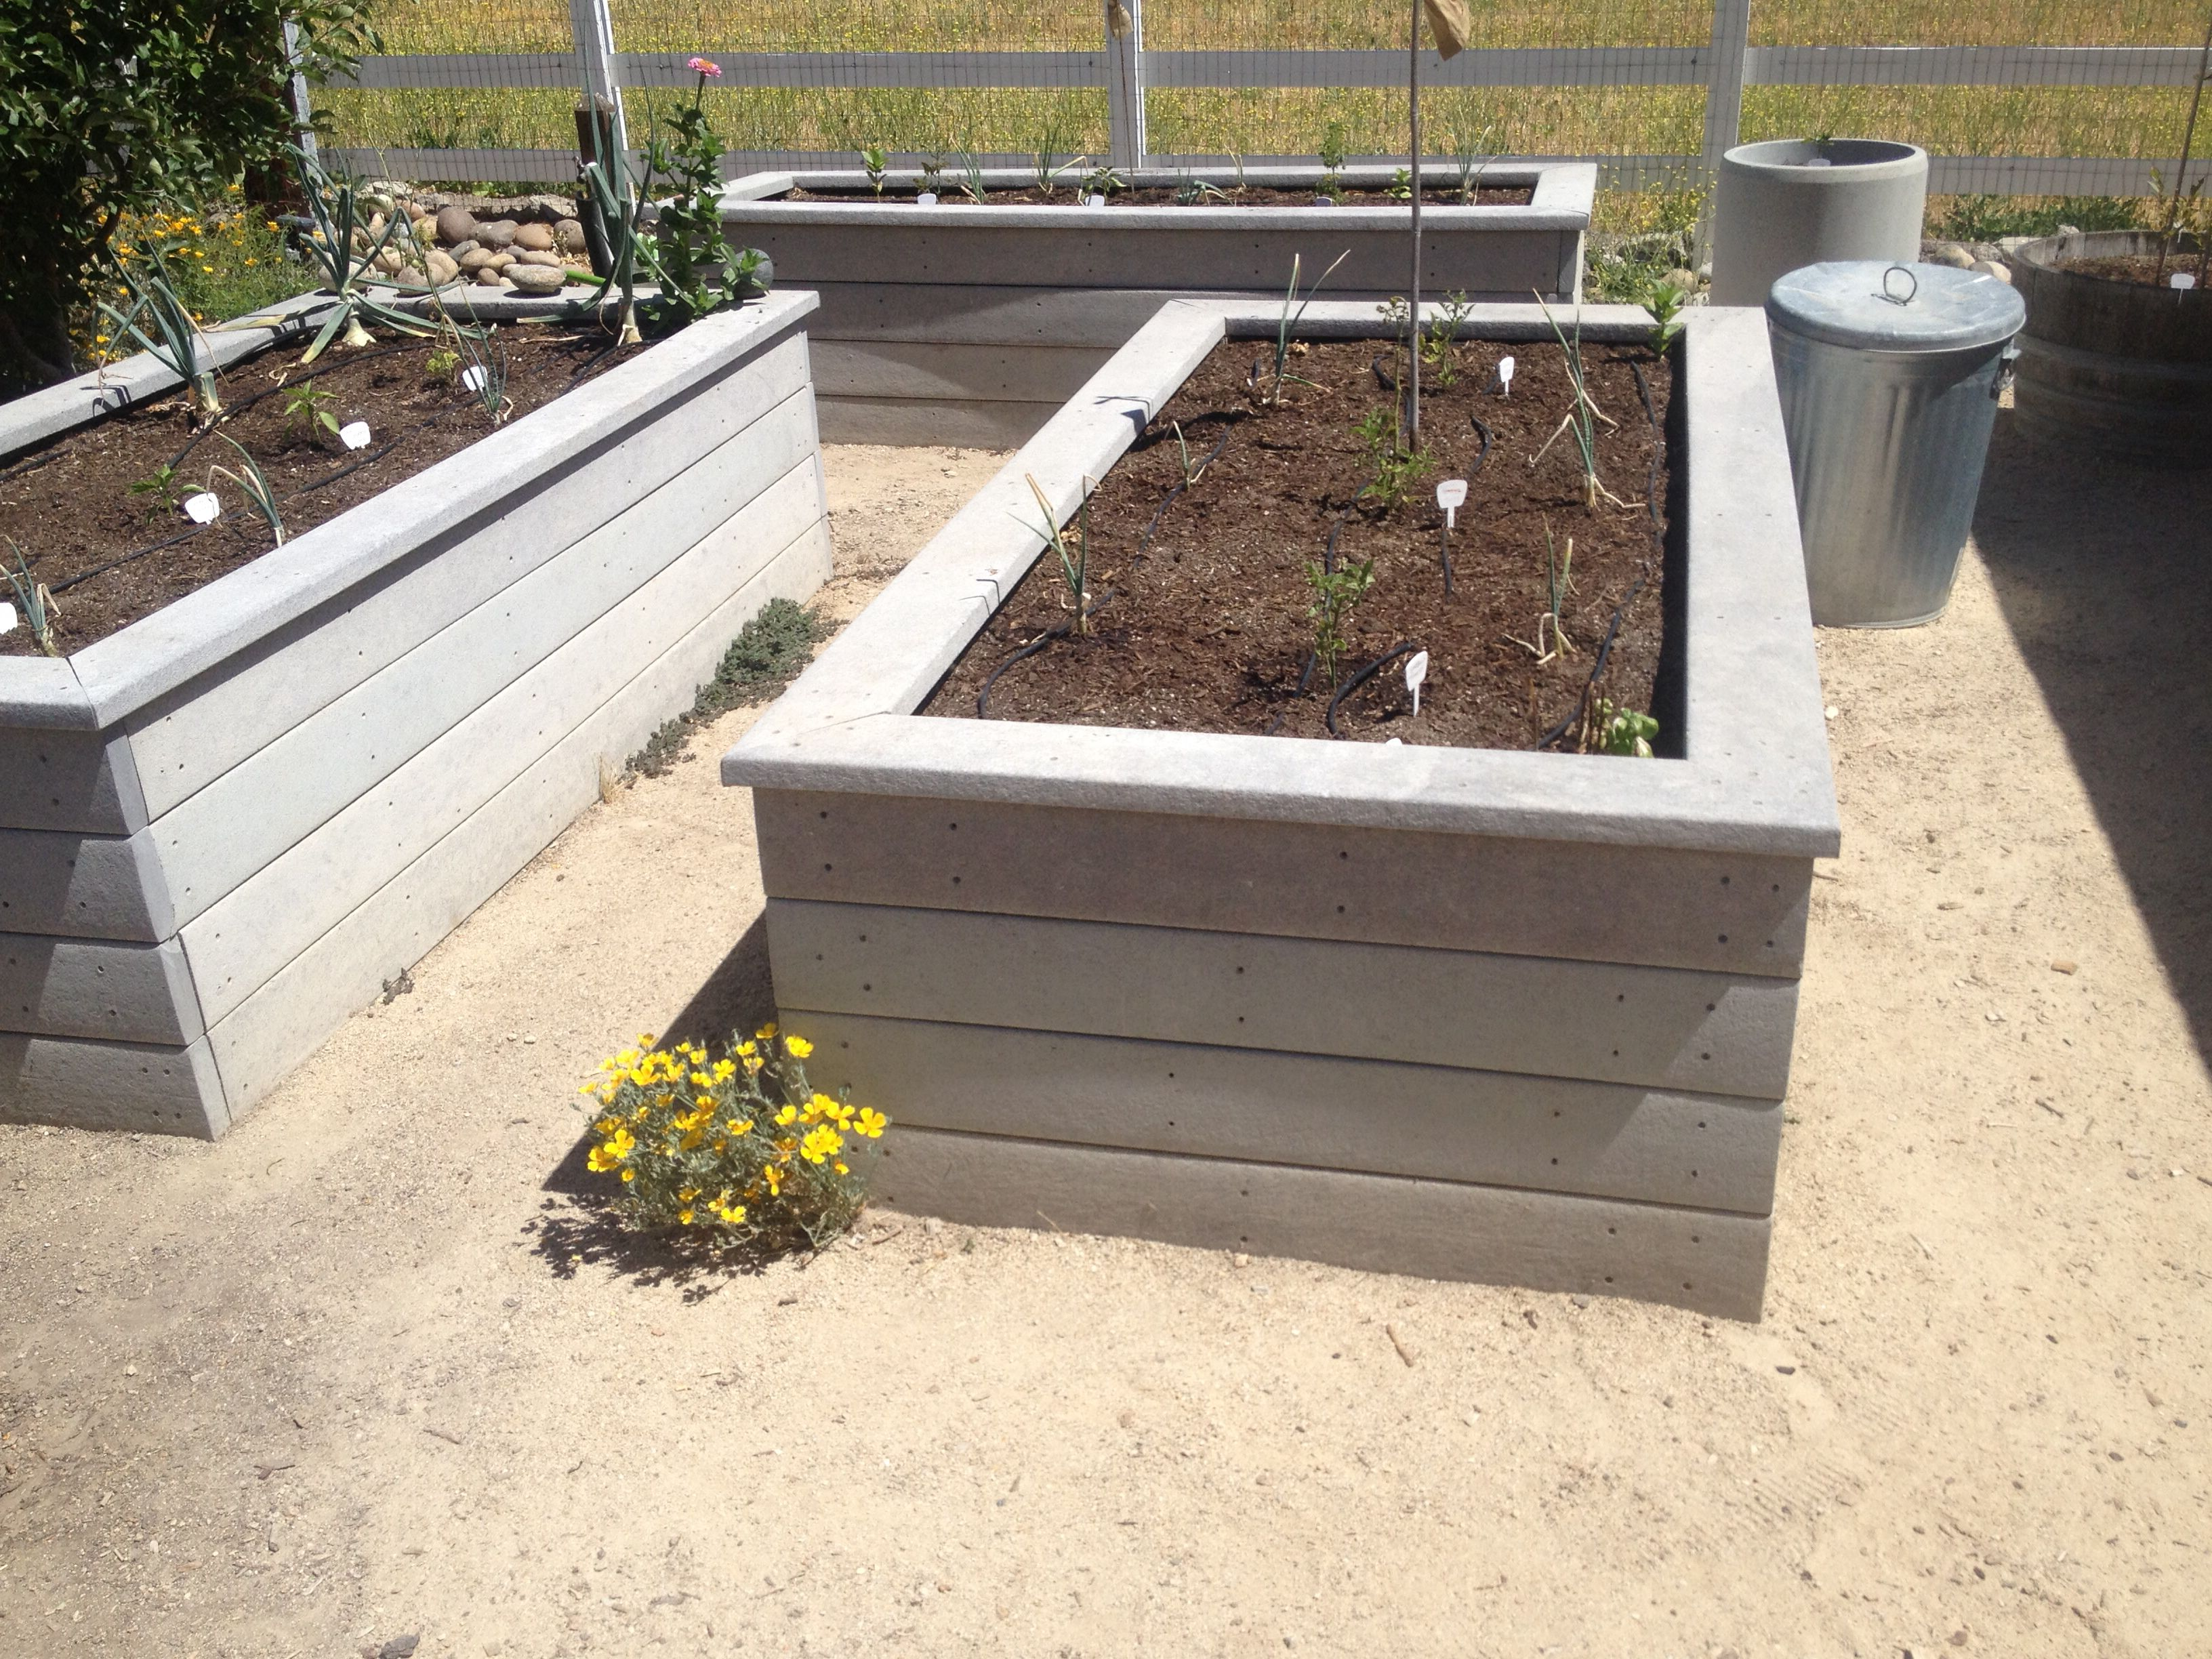 Trek Raised Garden Beds Clean And Wood Won T Rot With